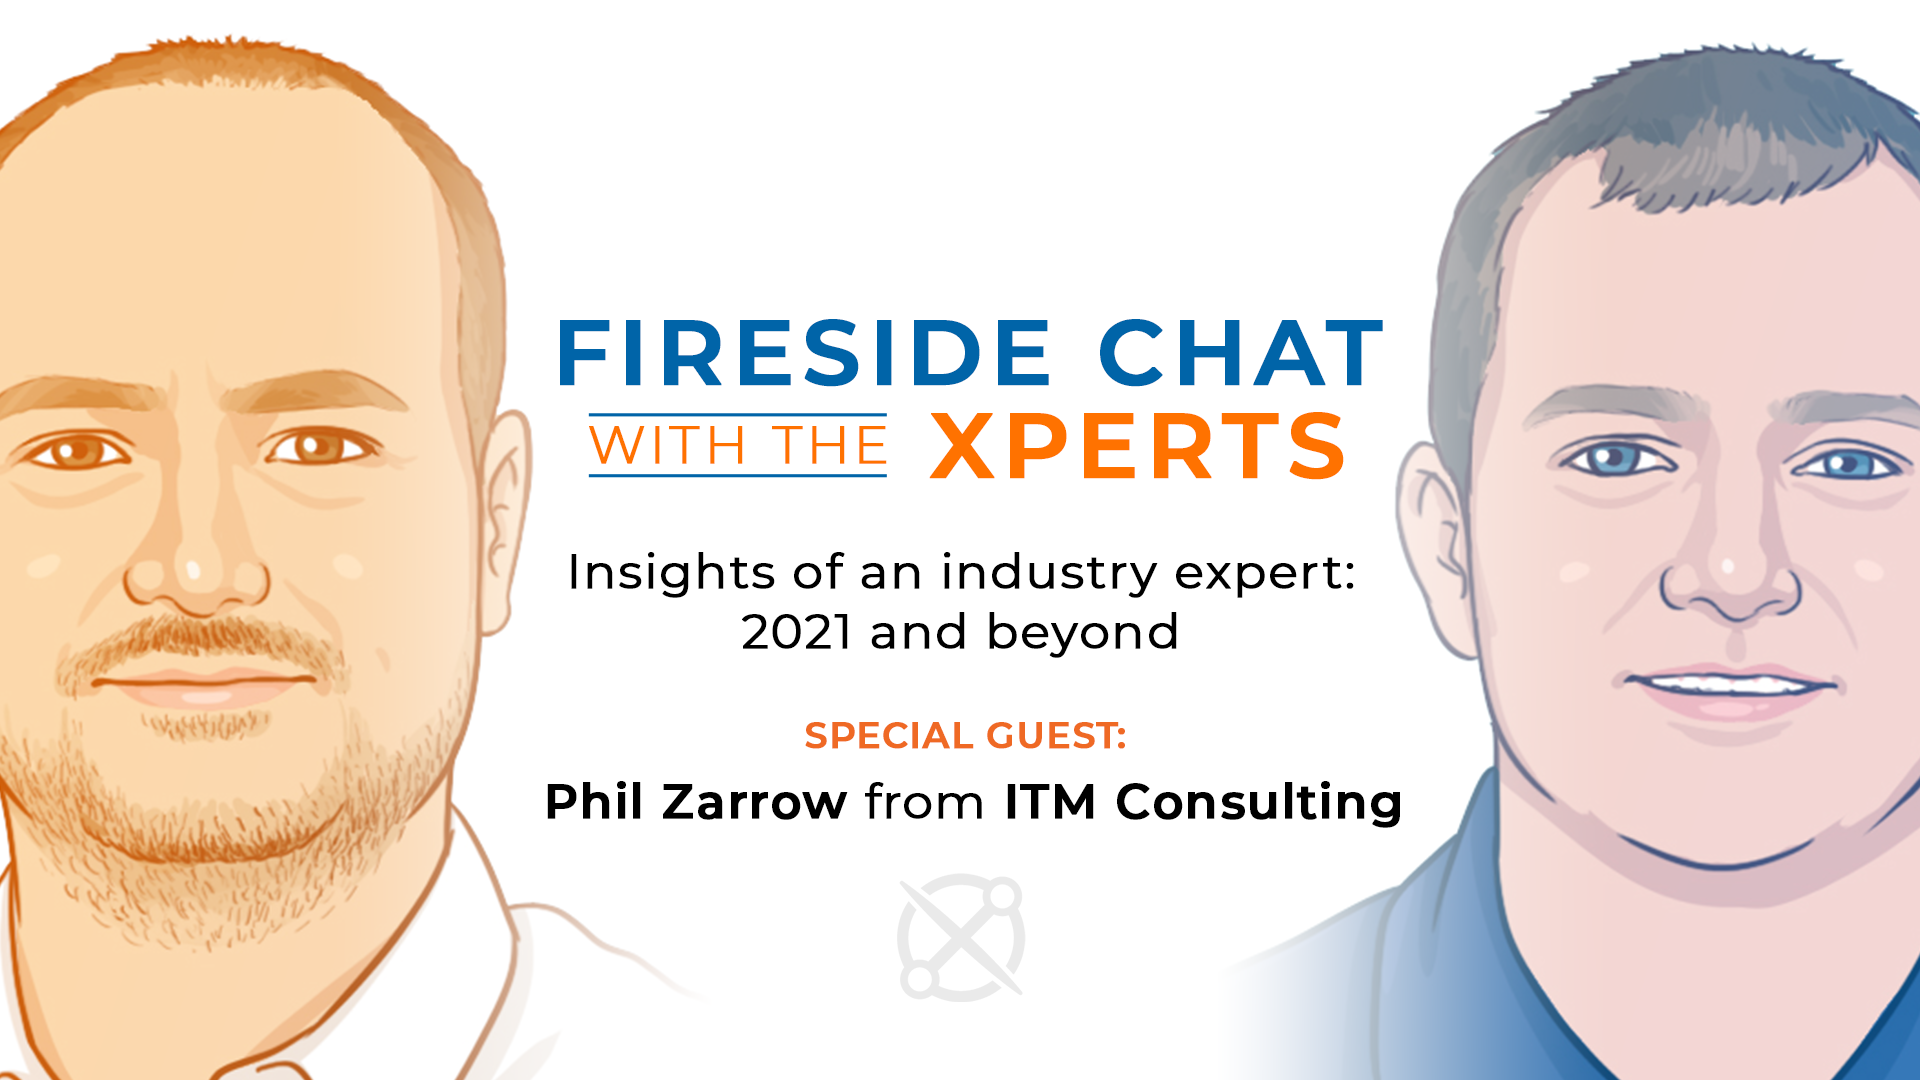 Fireside Chat with the Xperts: The Hare, the Hound and Phil Zarrow